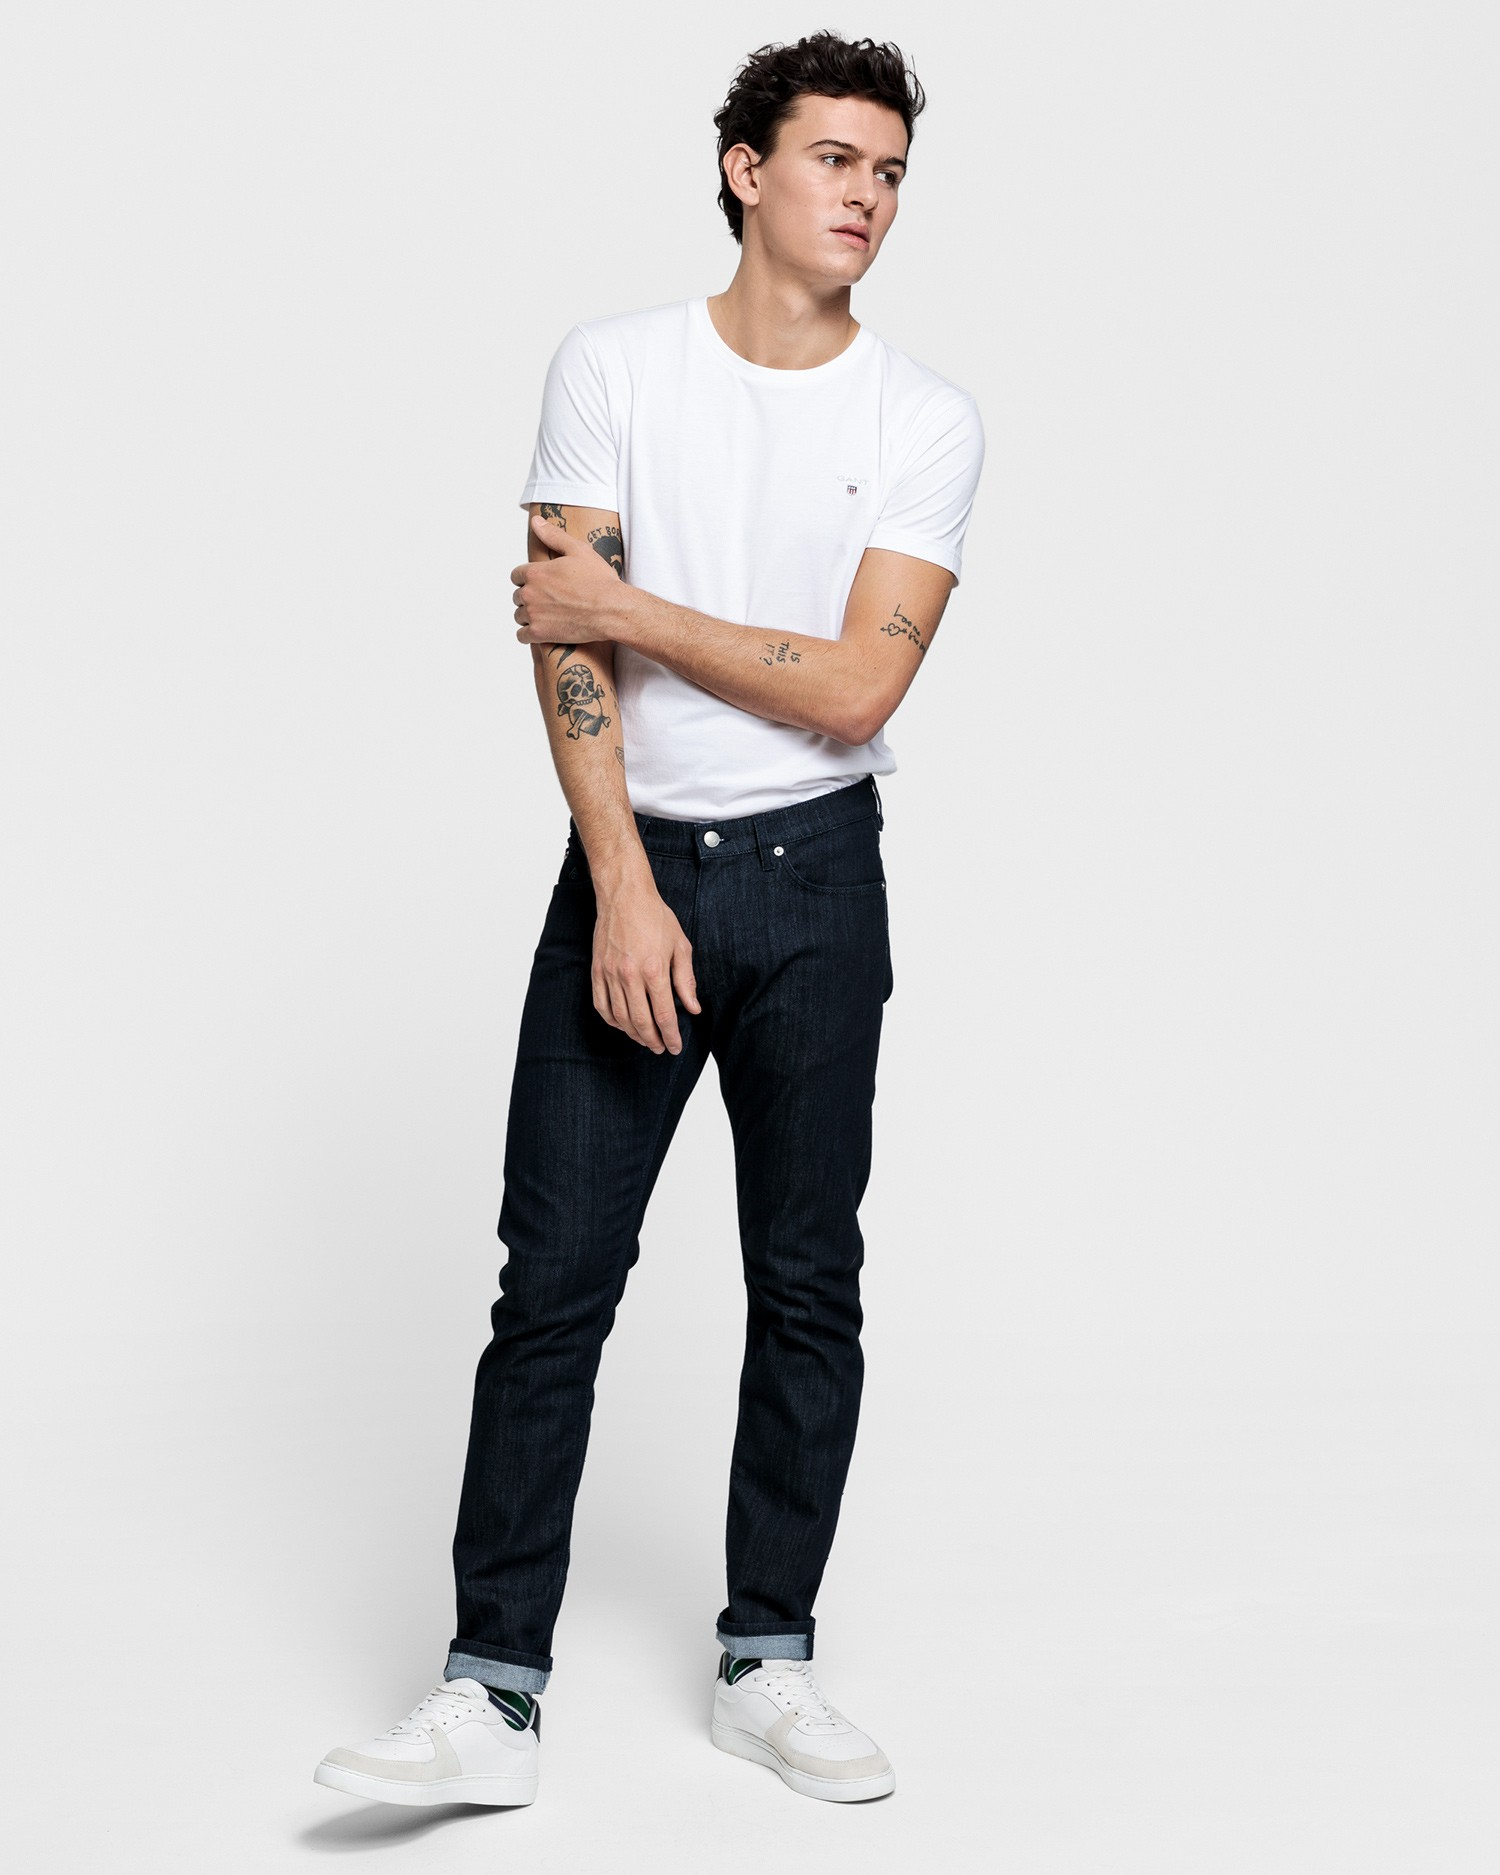 GANT Men's The Original Slim Fit T-Shirt - 234102